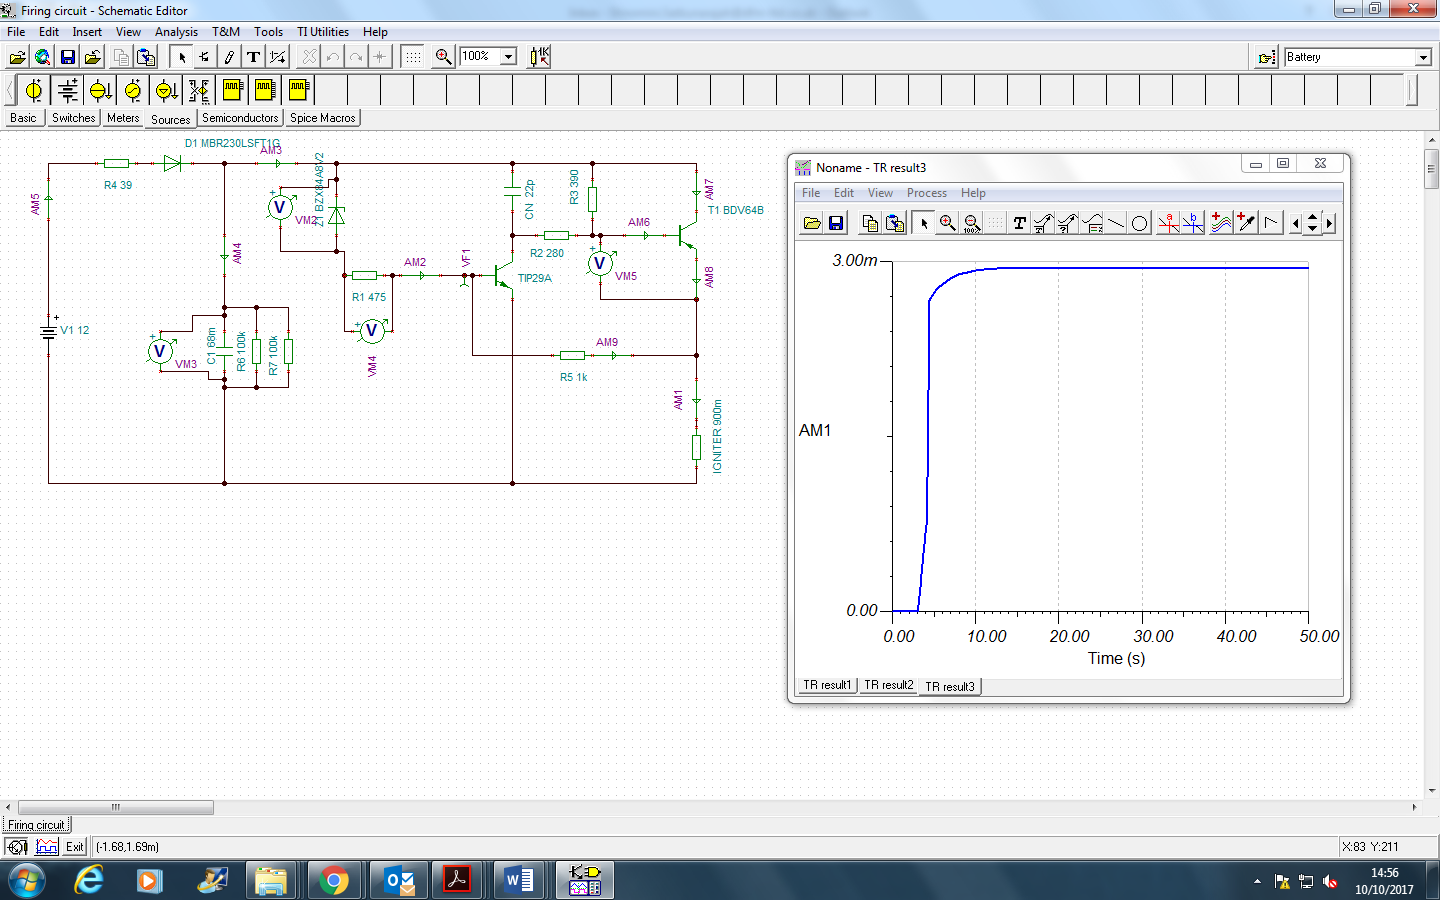 Resolved Webench Tools Tps61088 Slow Circuit Simulation And Of Sziklai Pair Also The Gain S Is To Get 5a Flow Through Load For 10ms While Voltage Across At Least 55v Clearly This Not Happening Complementary